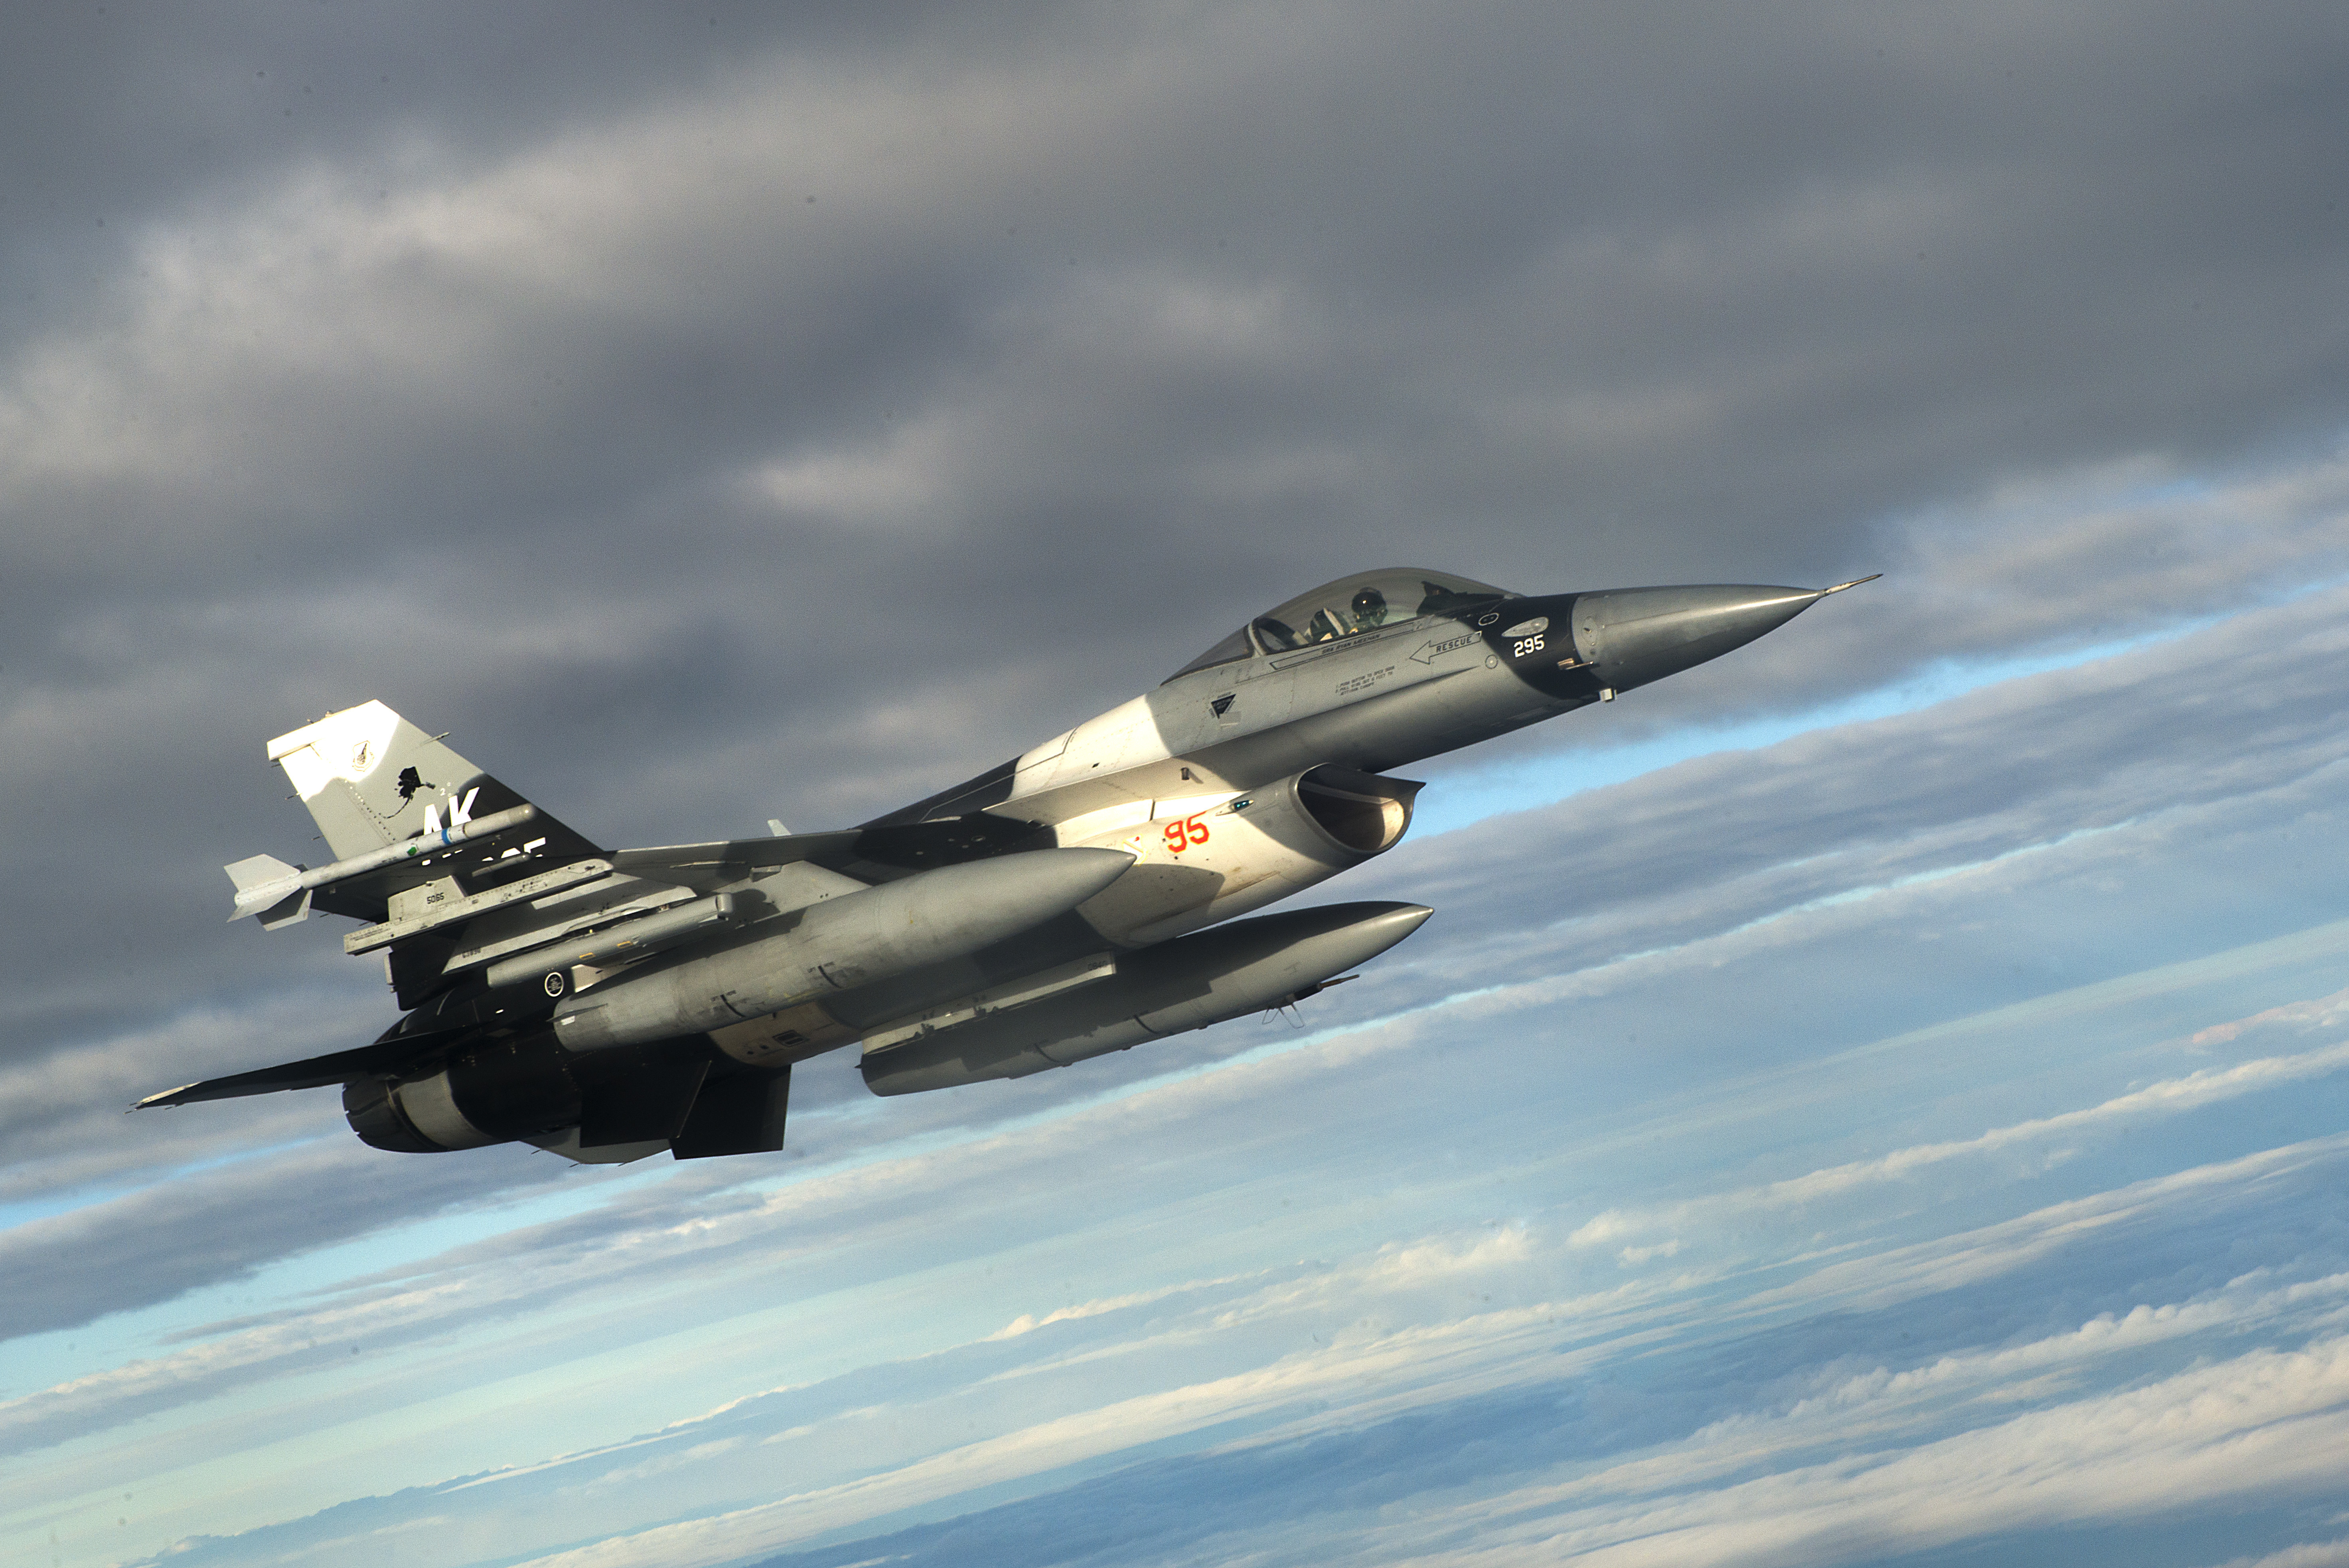 Alert 5 » Forceful Tiger 2016 - Military Aviation News